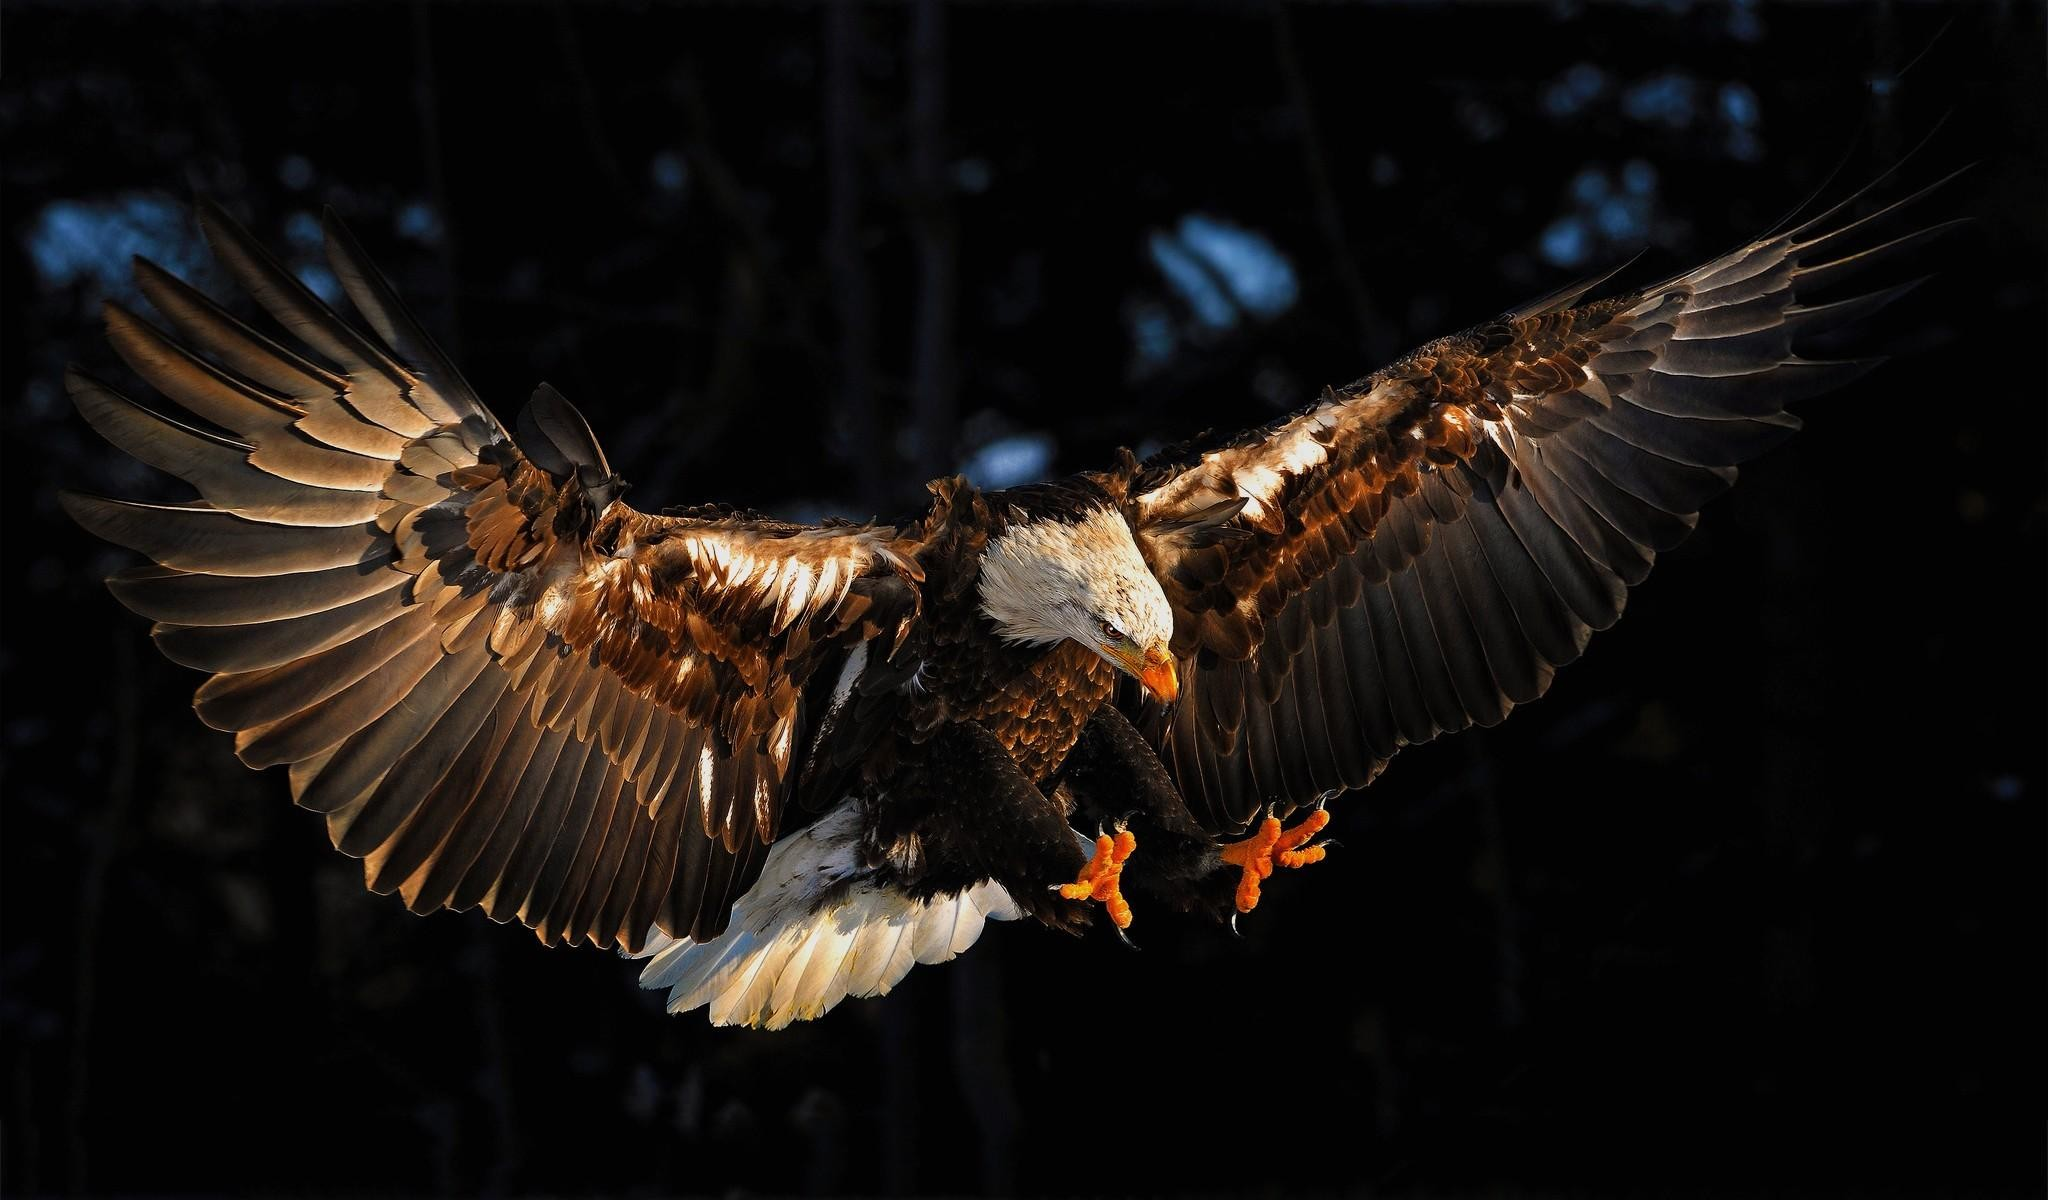 Eagle Wallpapers, Download Eagle HD Wallpapers for Free, GuoGuiyan  2048×1200 Eagle Wallpapers